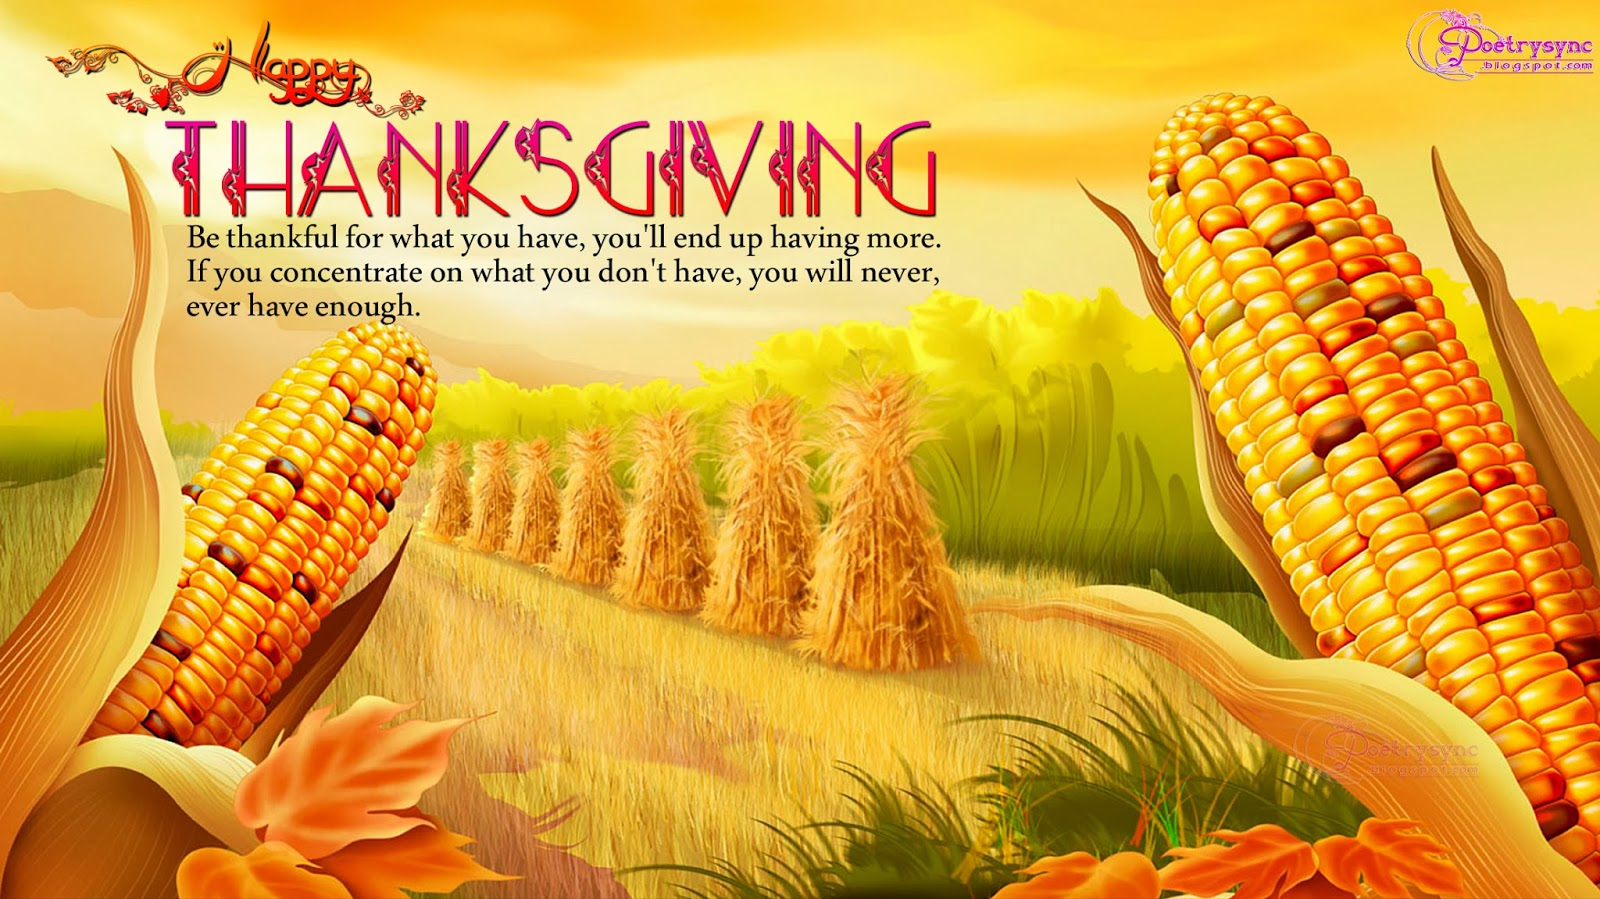 Happy thanksgiving greeting cards techicy happy thanksgiving greeting cards 18 kristyandbryce Choice Image